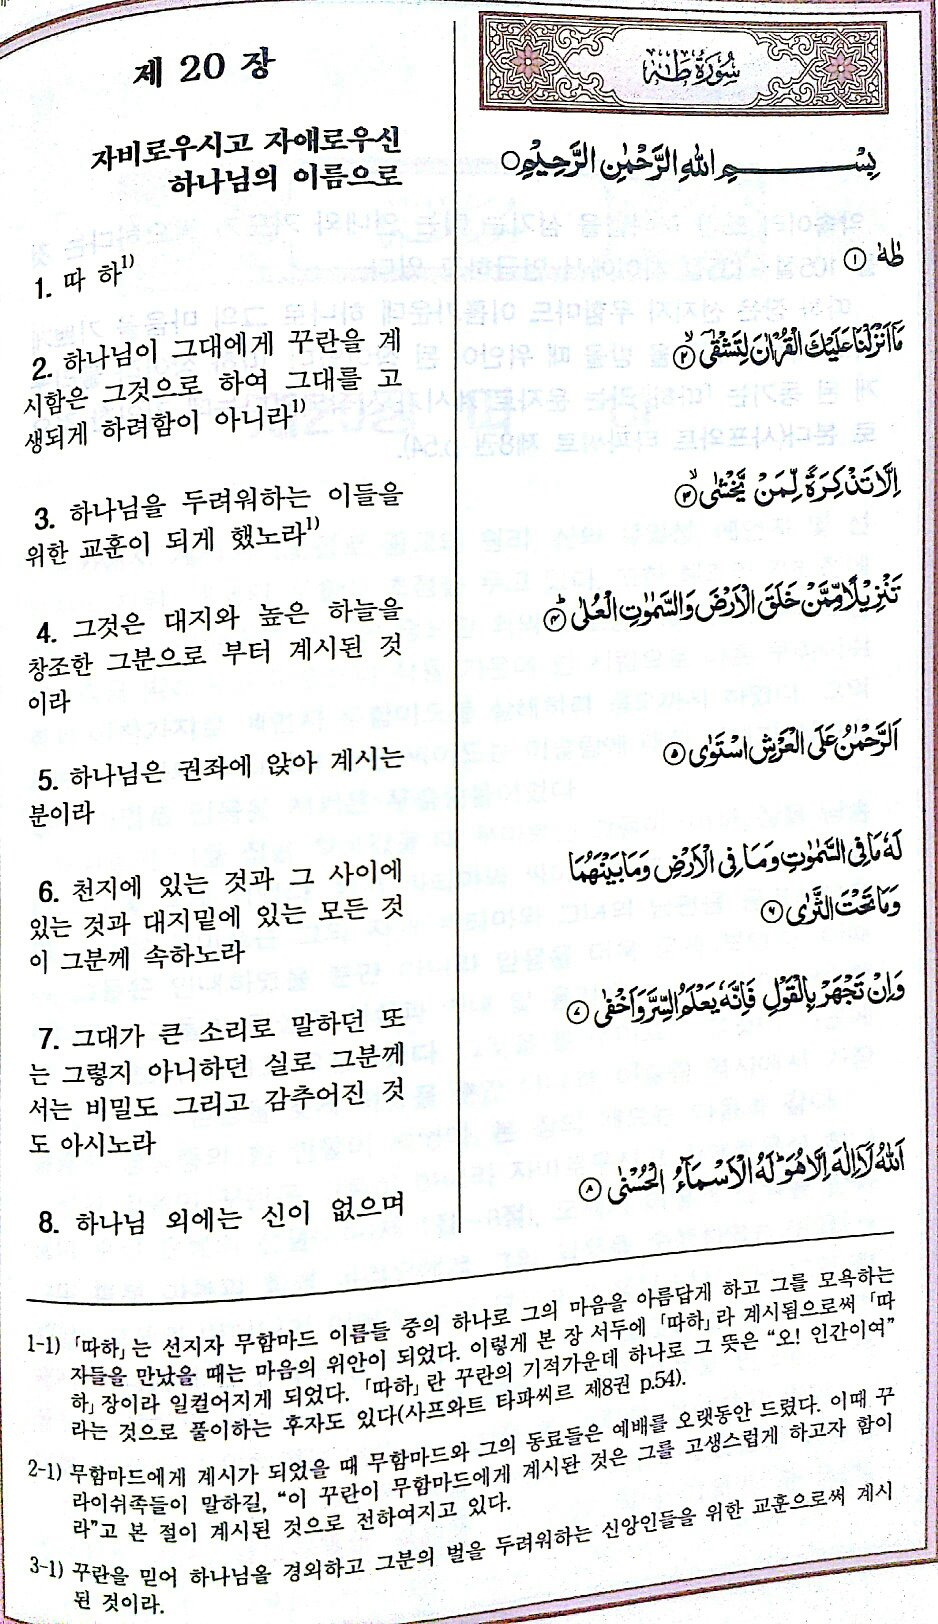 quran_korea_toha_about_Allah